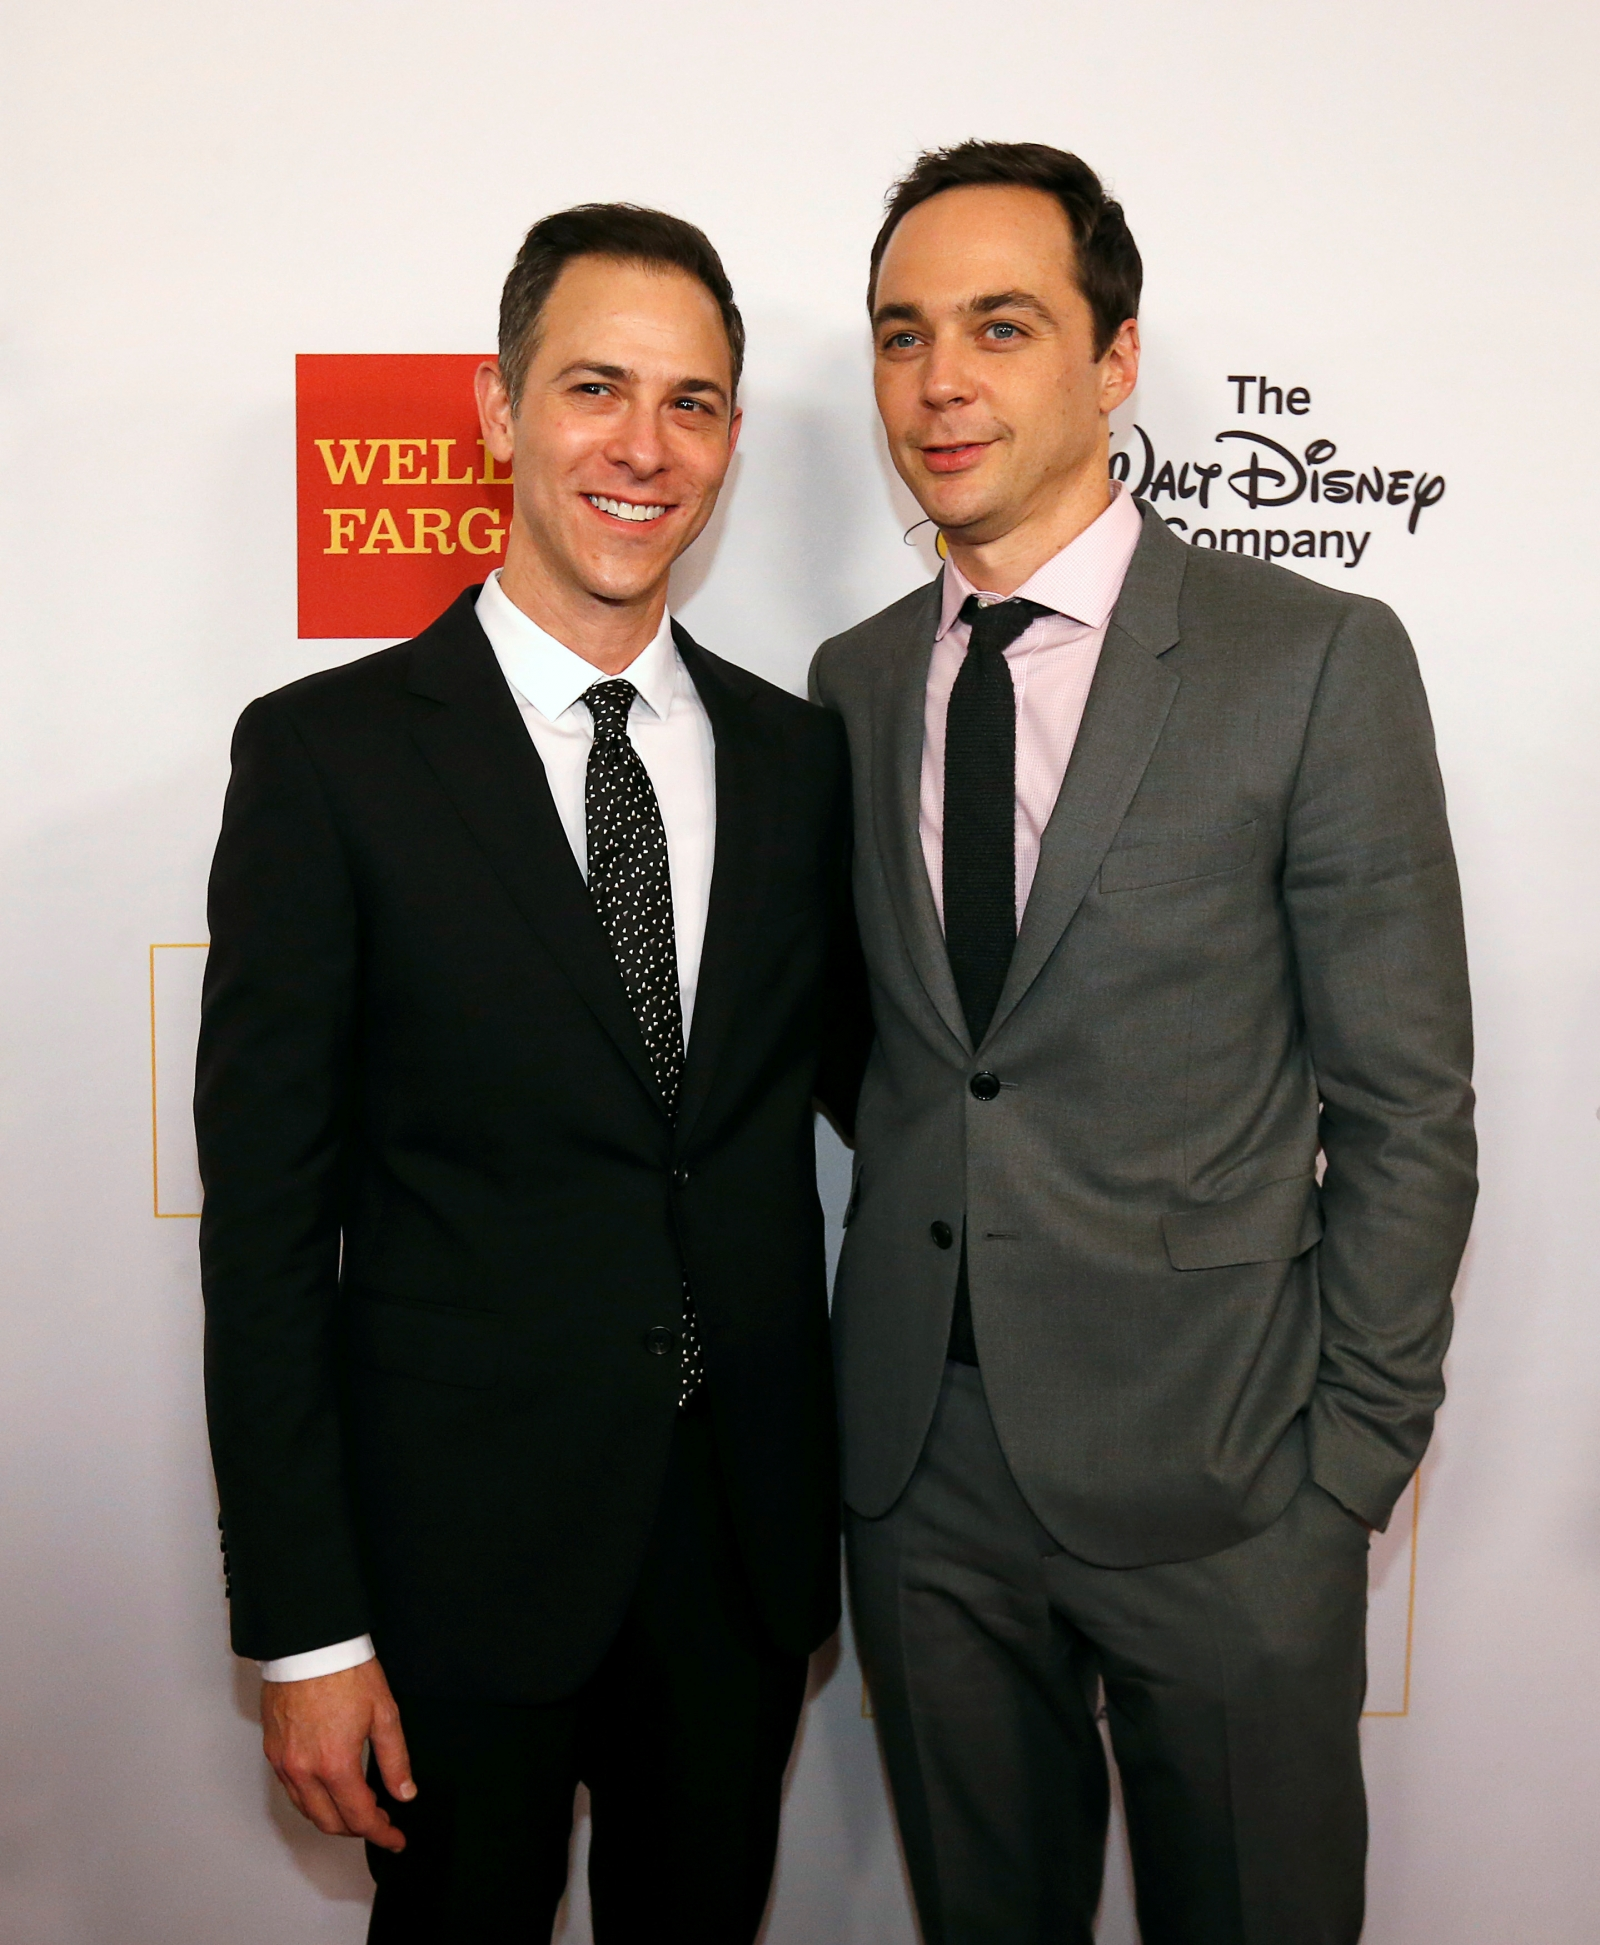 Jim Parsons Wedding: The Big Bang Theory Star Jim Parsons Ties The Knot With